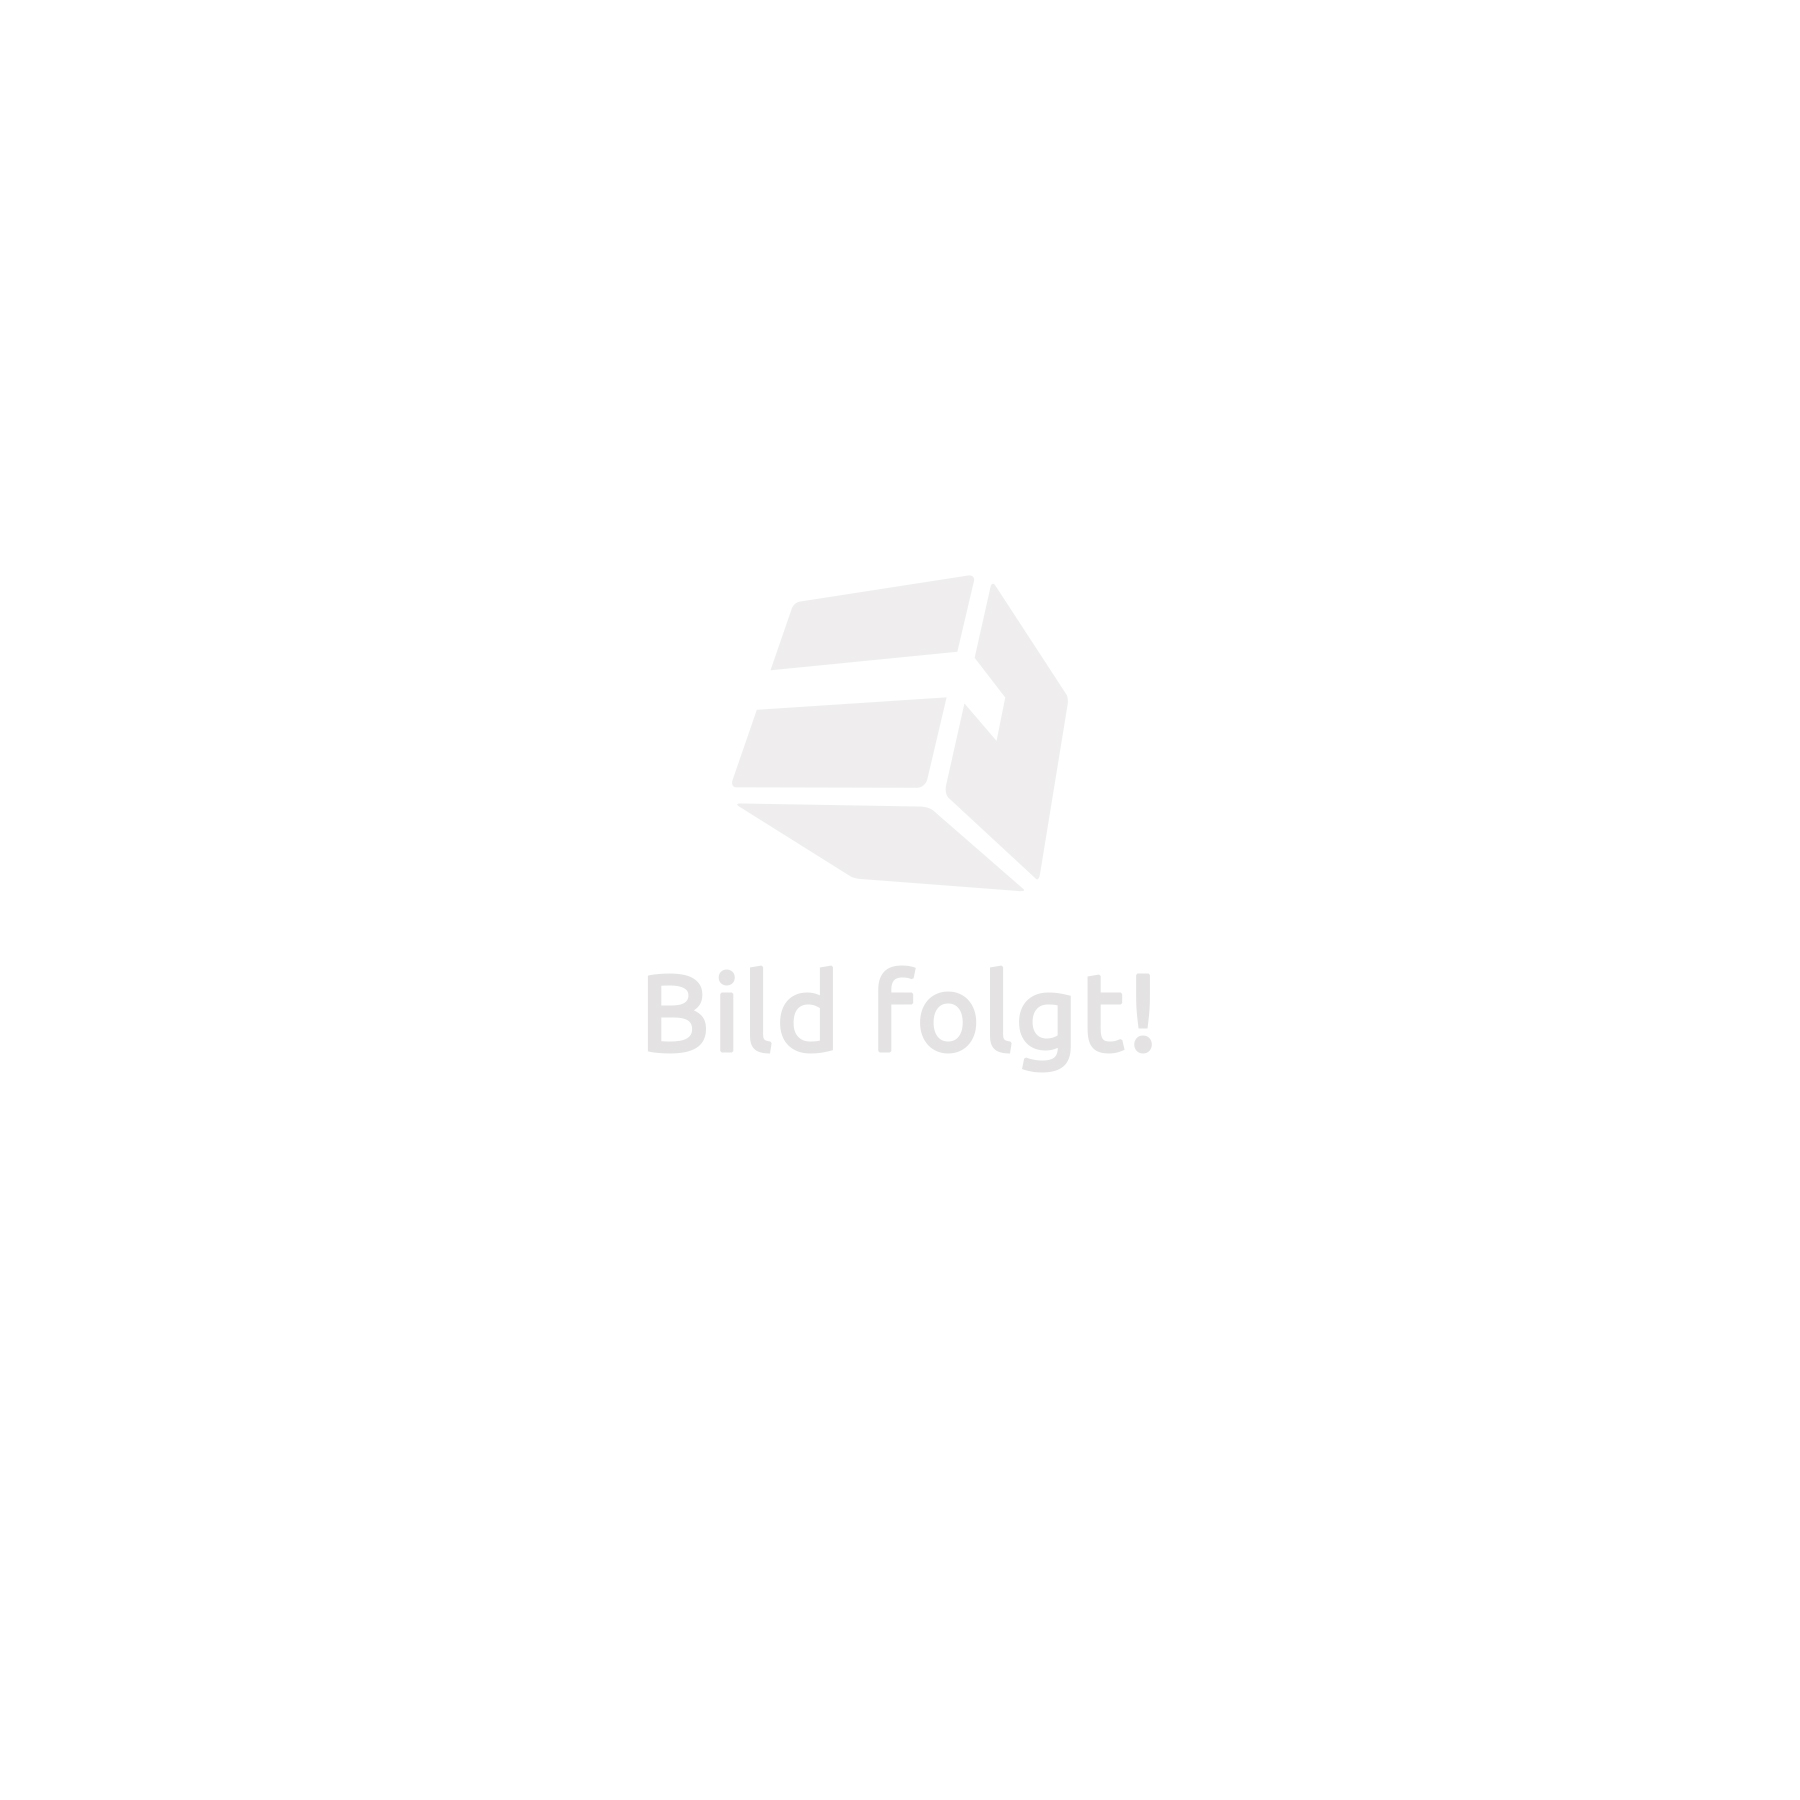 Termostato digital inalambrico calefaccion programable - Termostato inalambrico caldera ...